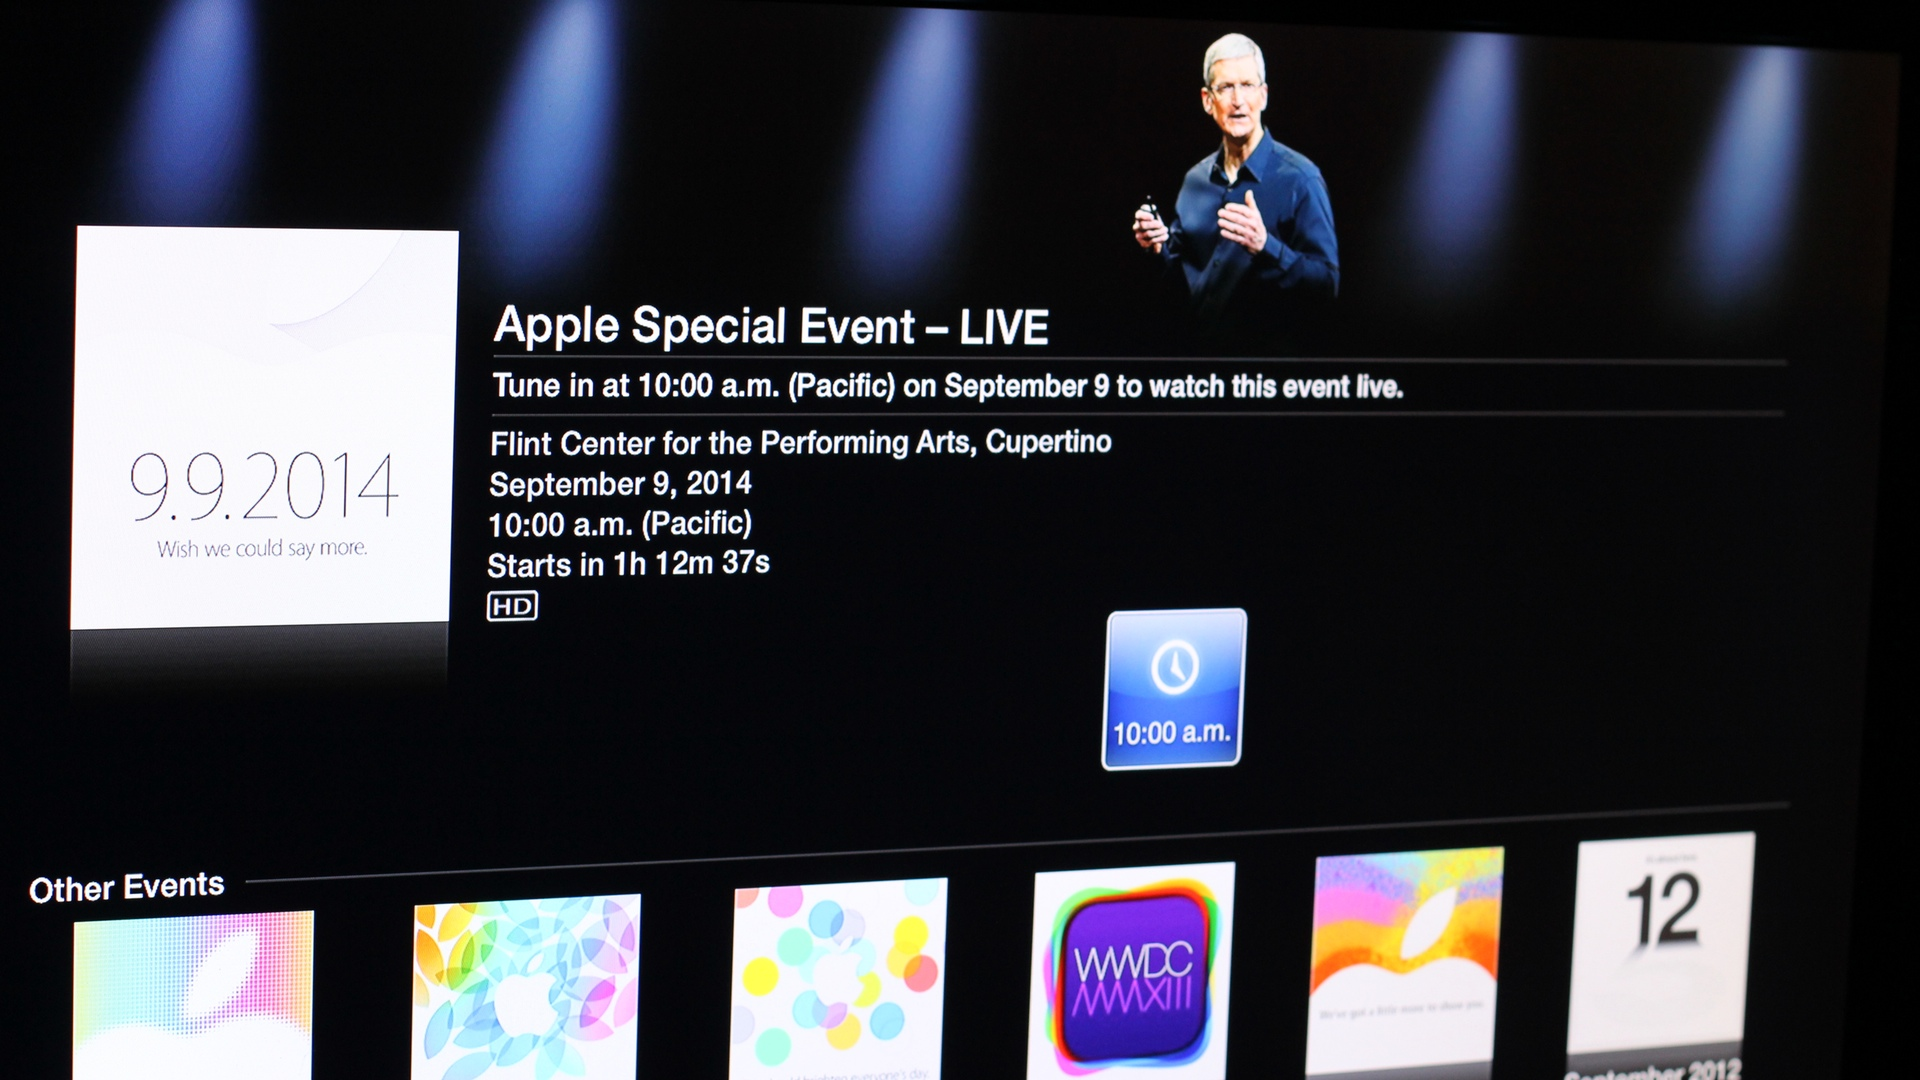 Apple Special Event 20140909 on Apple TV